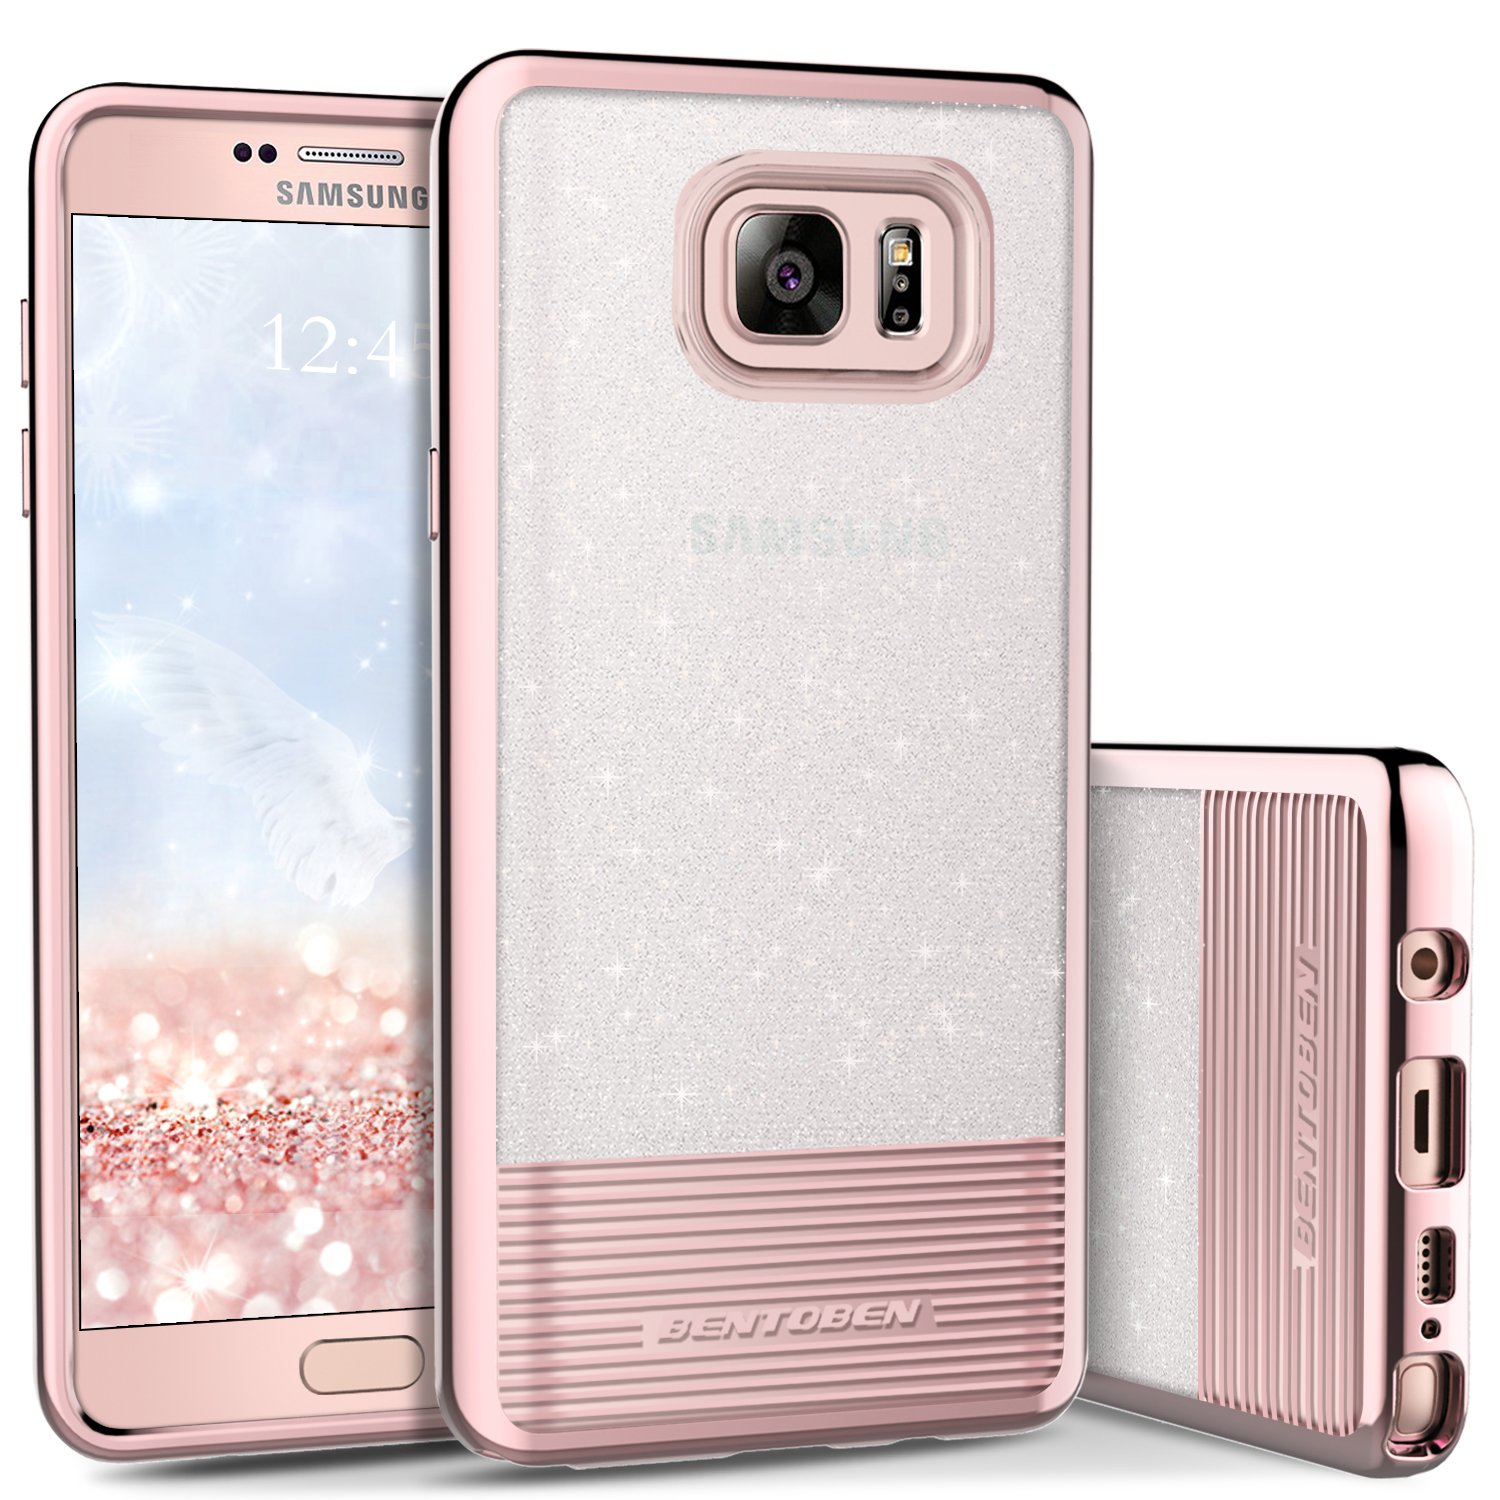 Galaxy Note 5 Case, Galaxy Note 5 Phone Case, BENTOBEN Bling Glitter Chrome Stripe Design Hybrid TPU PC Dual Layer Shockproof Slim Protective Phone Case Cover for Samsung Galaxy Note 5 Cute Rose Gold